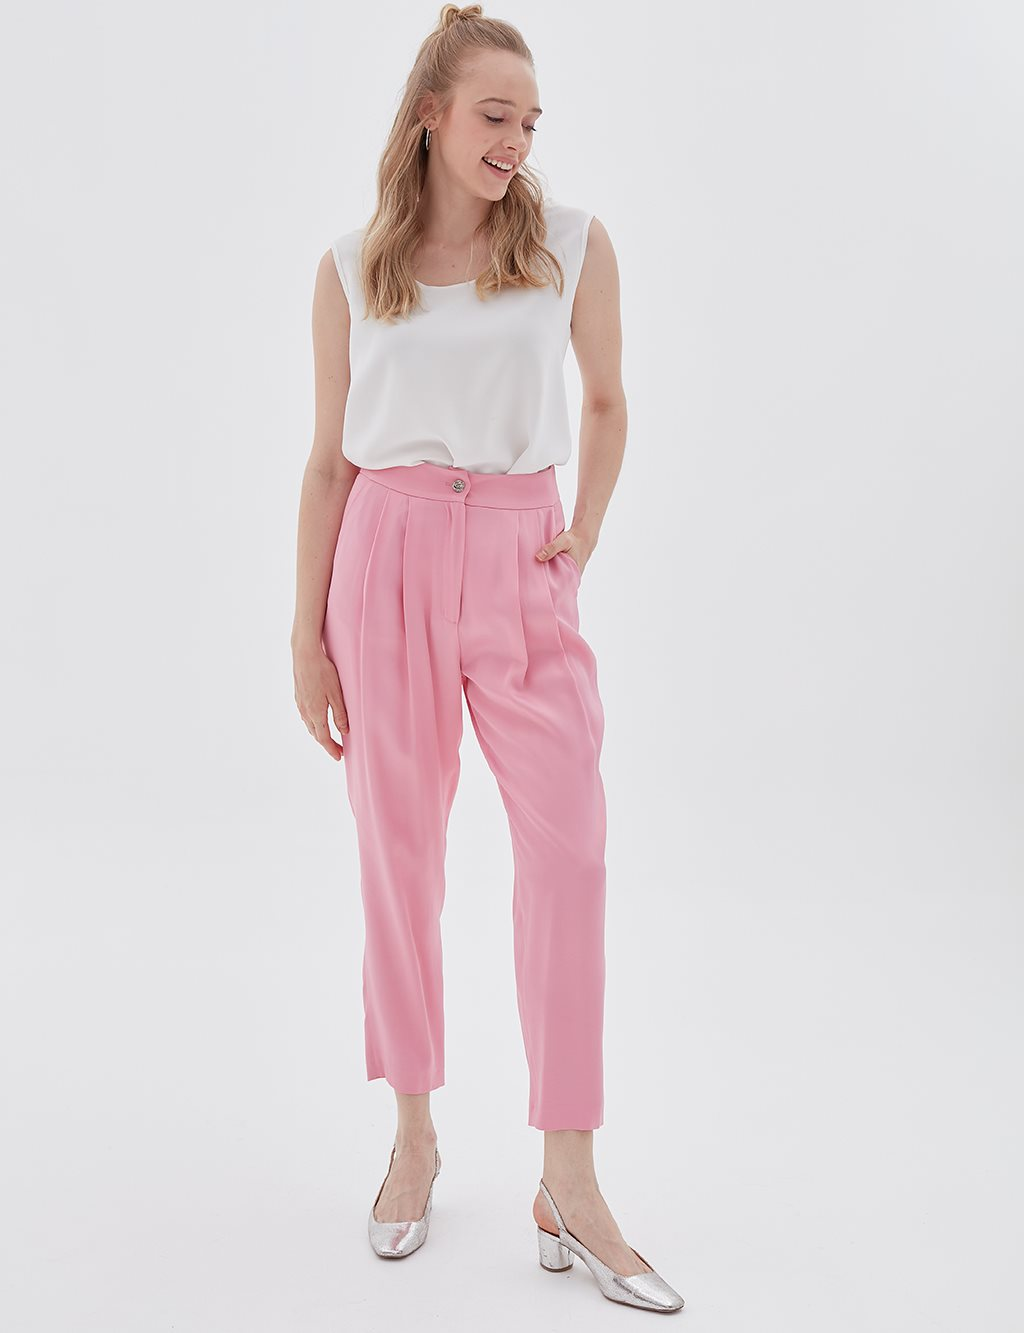 Pleated Pants Pink B20 19185